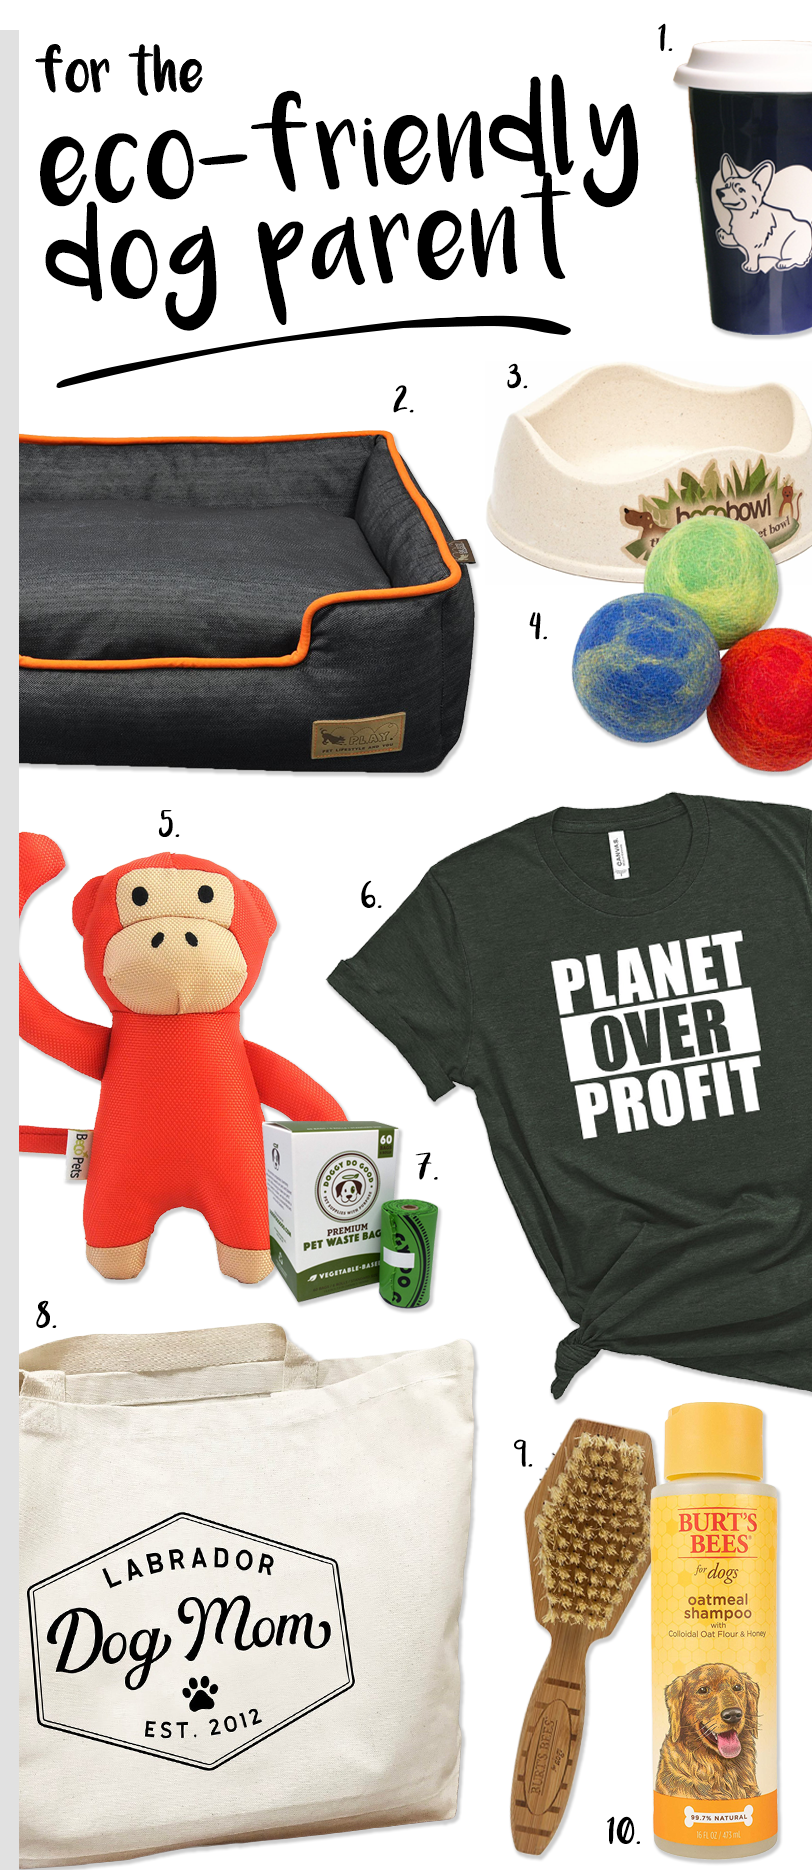 Gift ideas for the eco-friendly dog parent #dogparentgifts #ecofriendlygifts